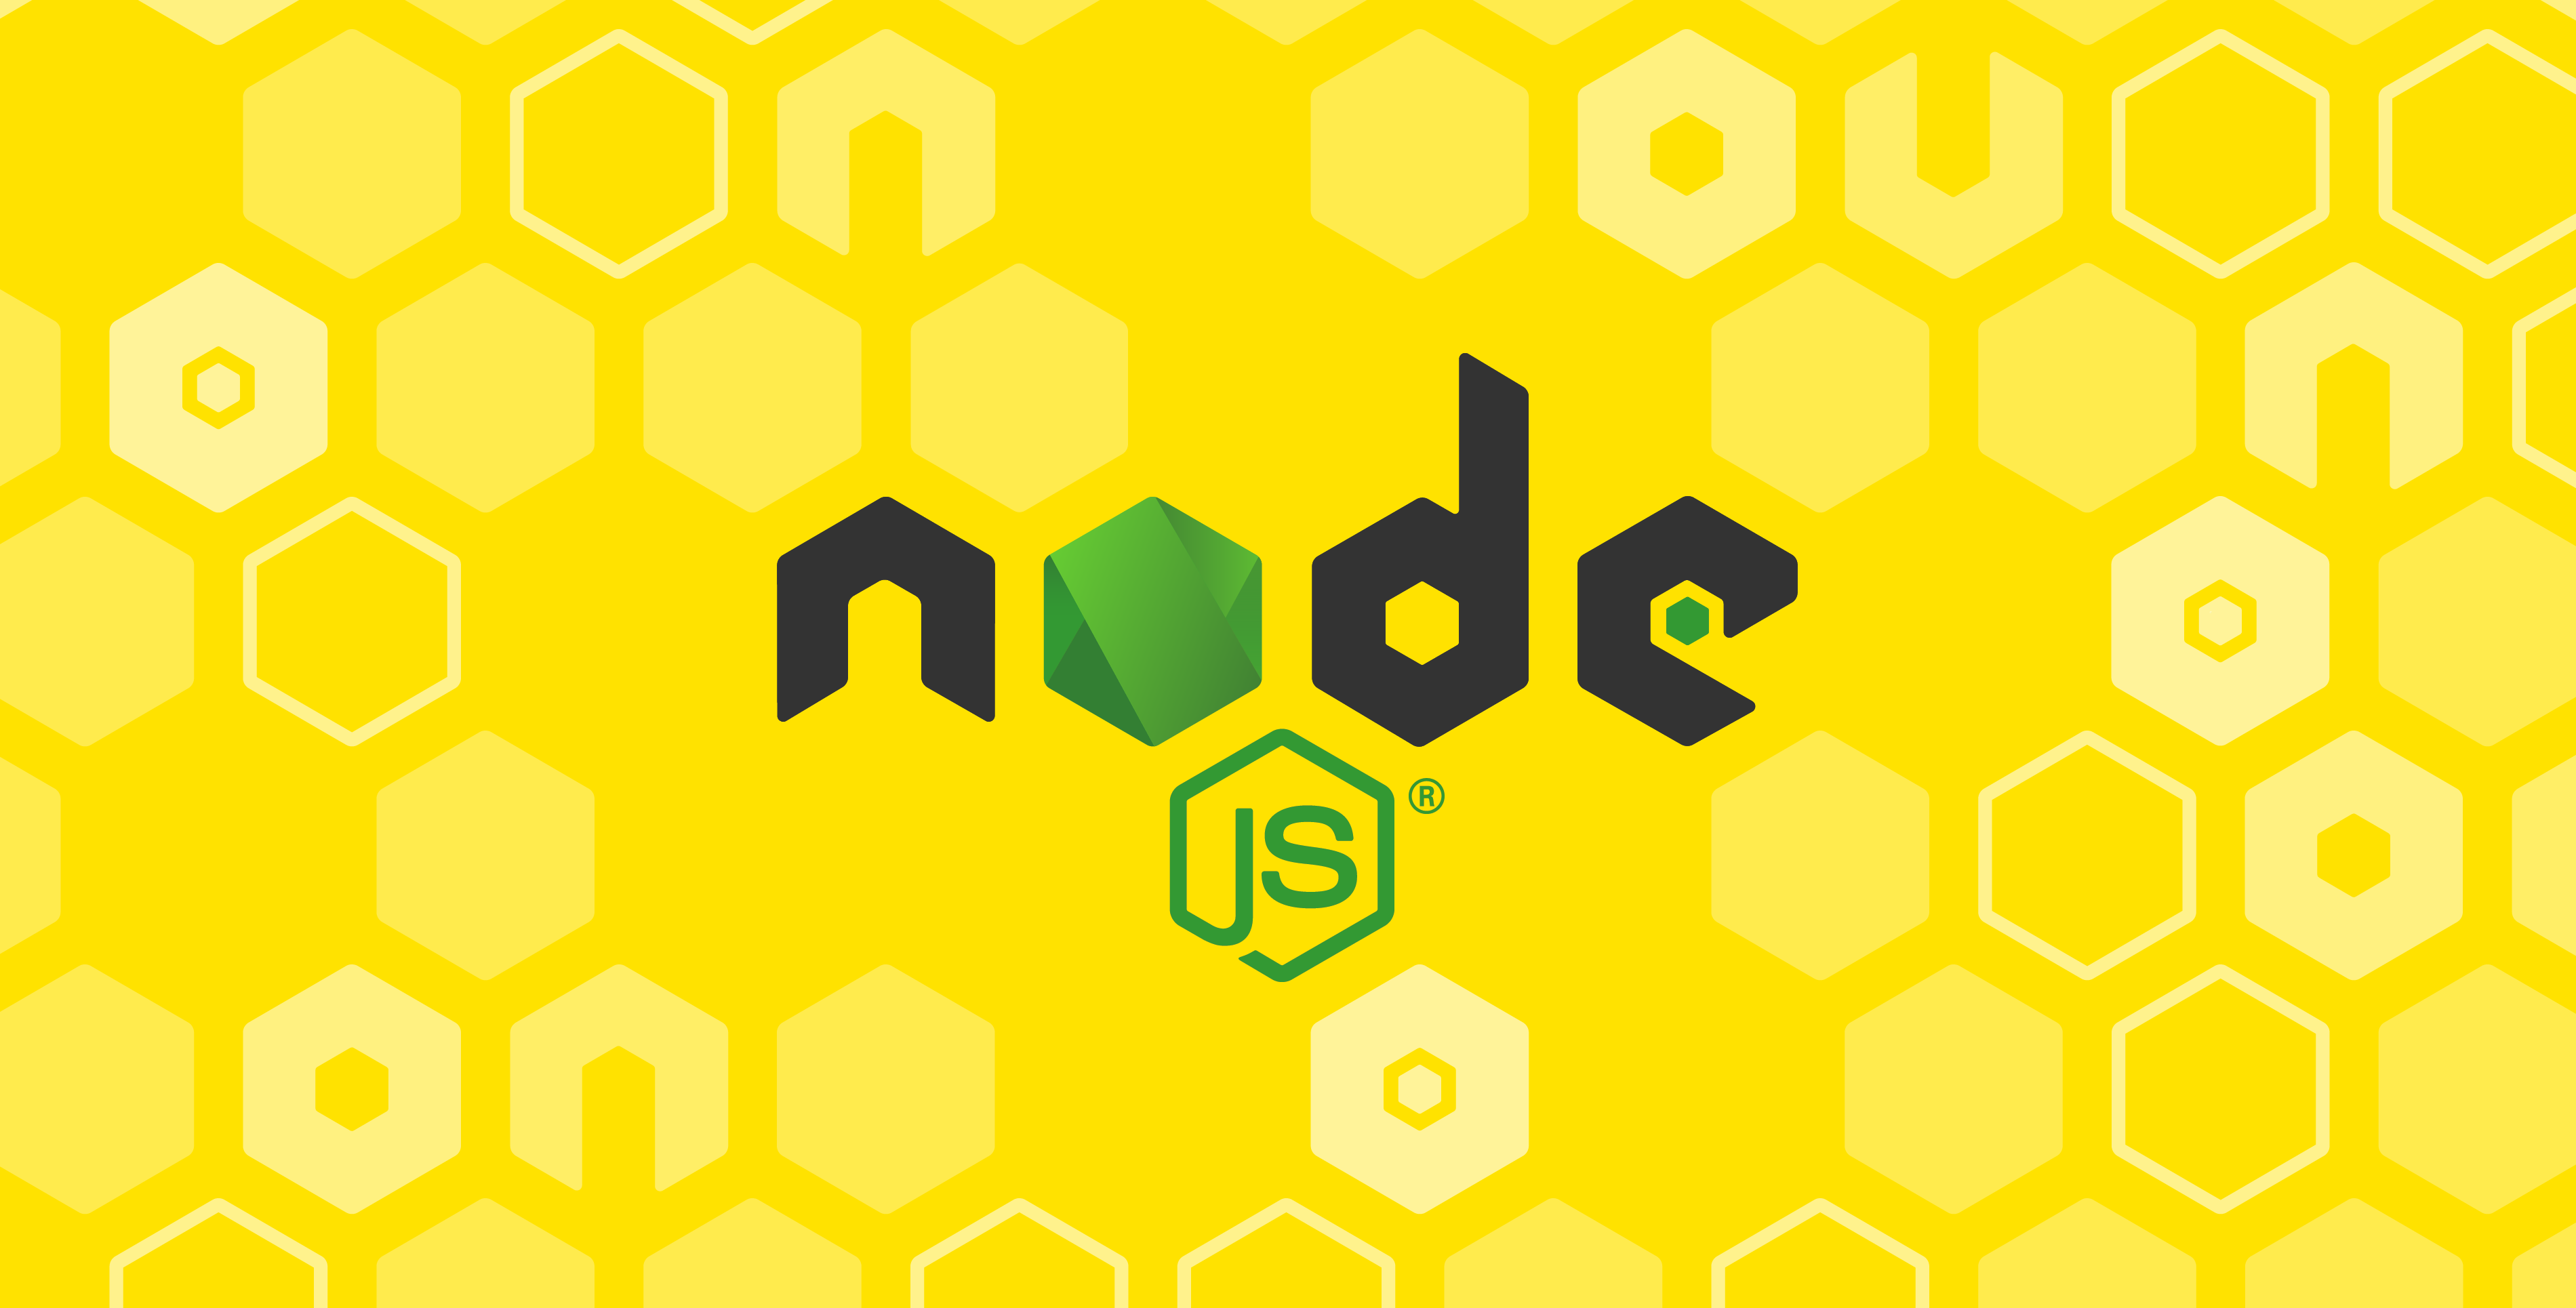 How To Build A Basic Crud App With Nodejs